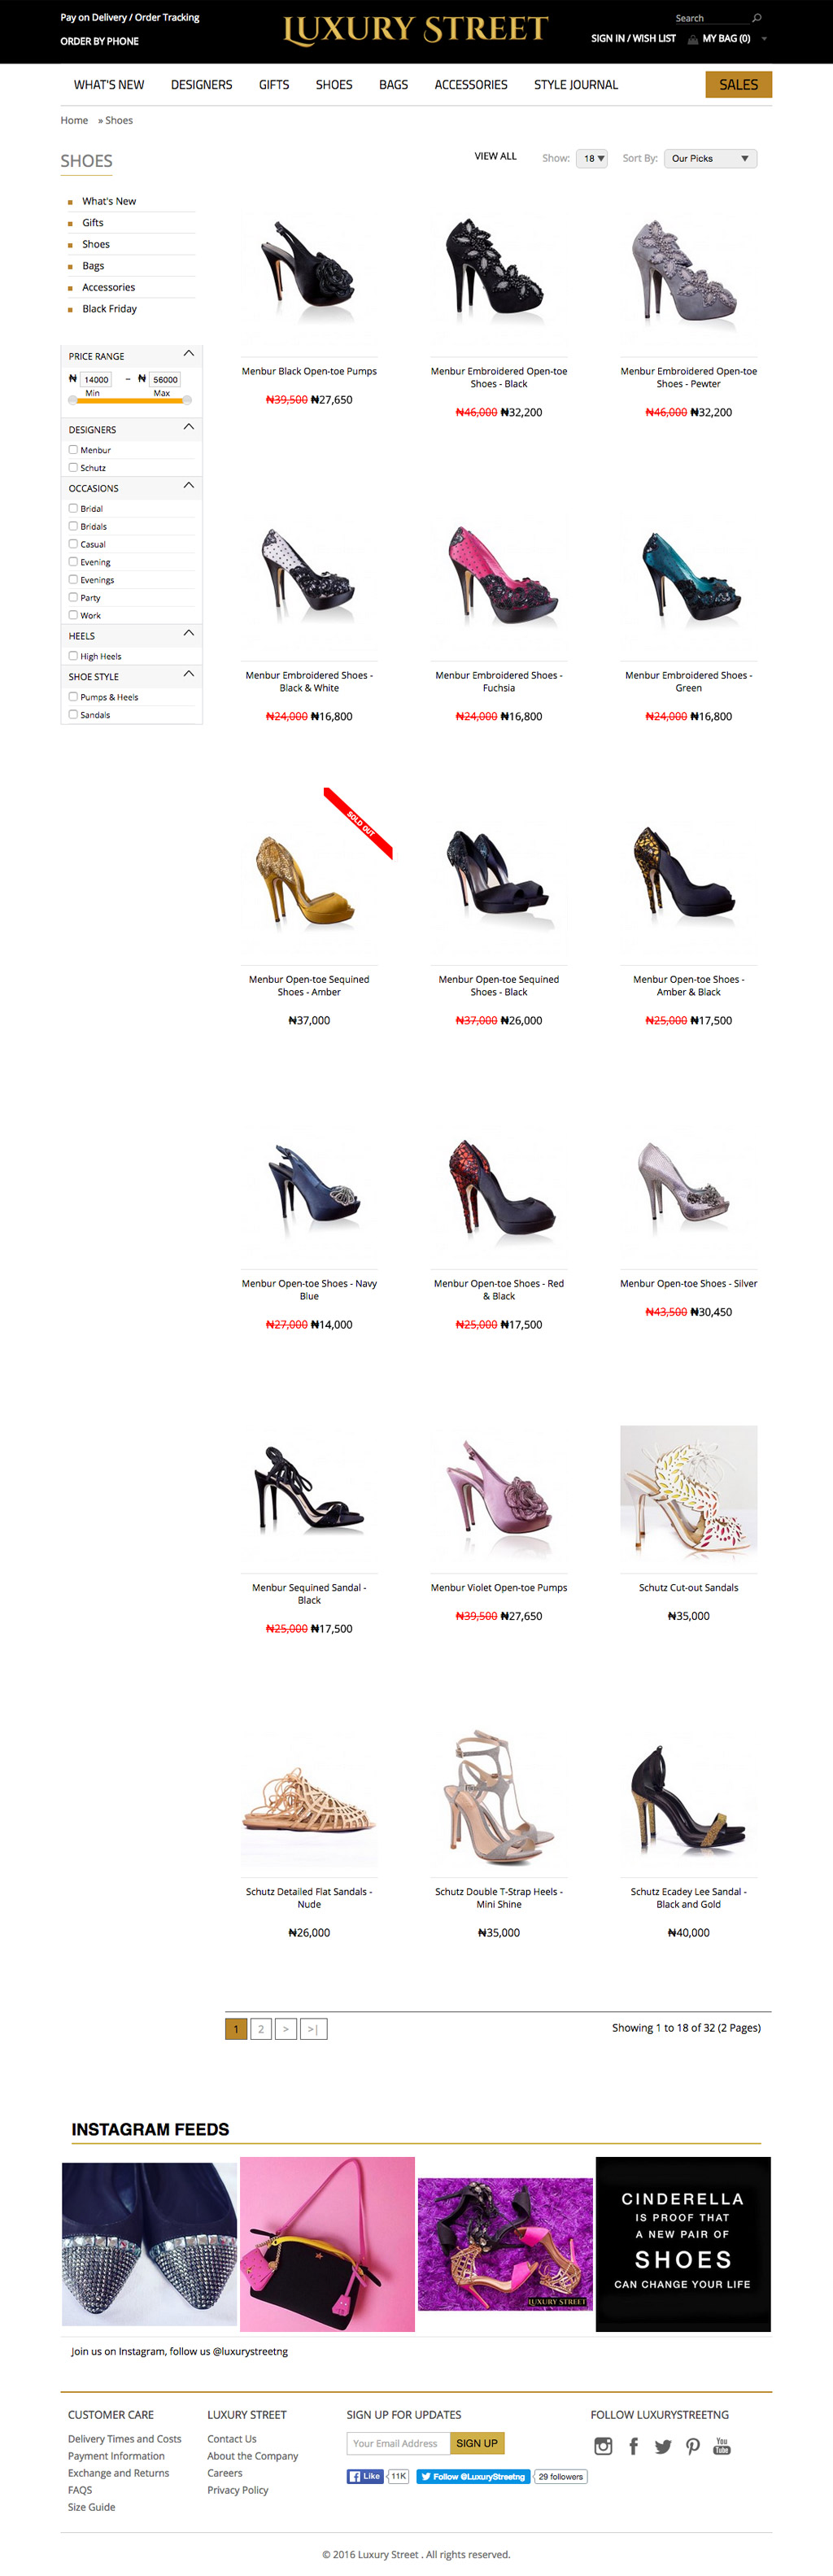 luxury-street-ecommerce-website-category-page